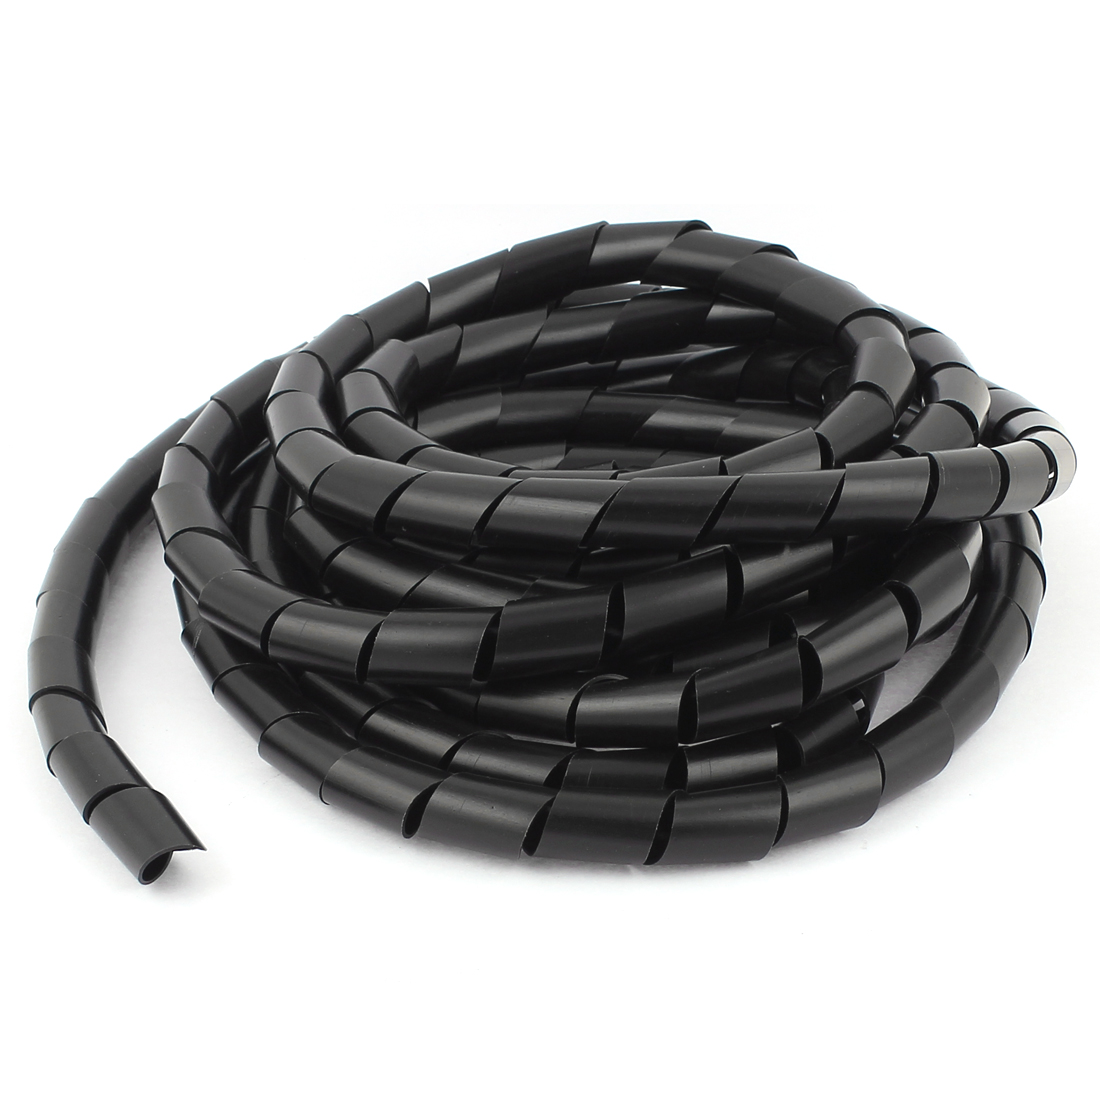 Cable Wire Tidy Wrap PC Home Cinema TV Management Organising 14mm Dia 4.5m Spiral Wire Wrap Black